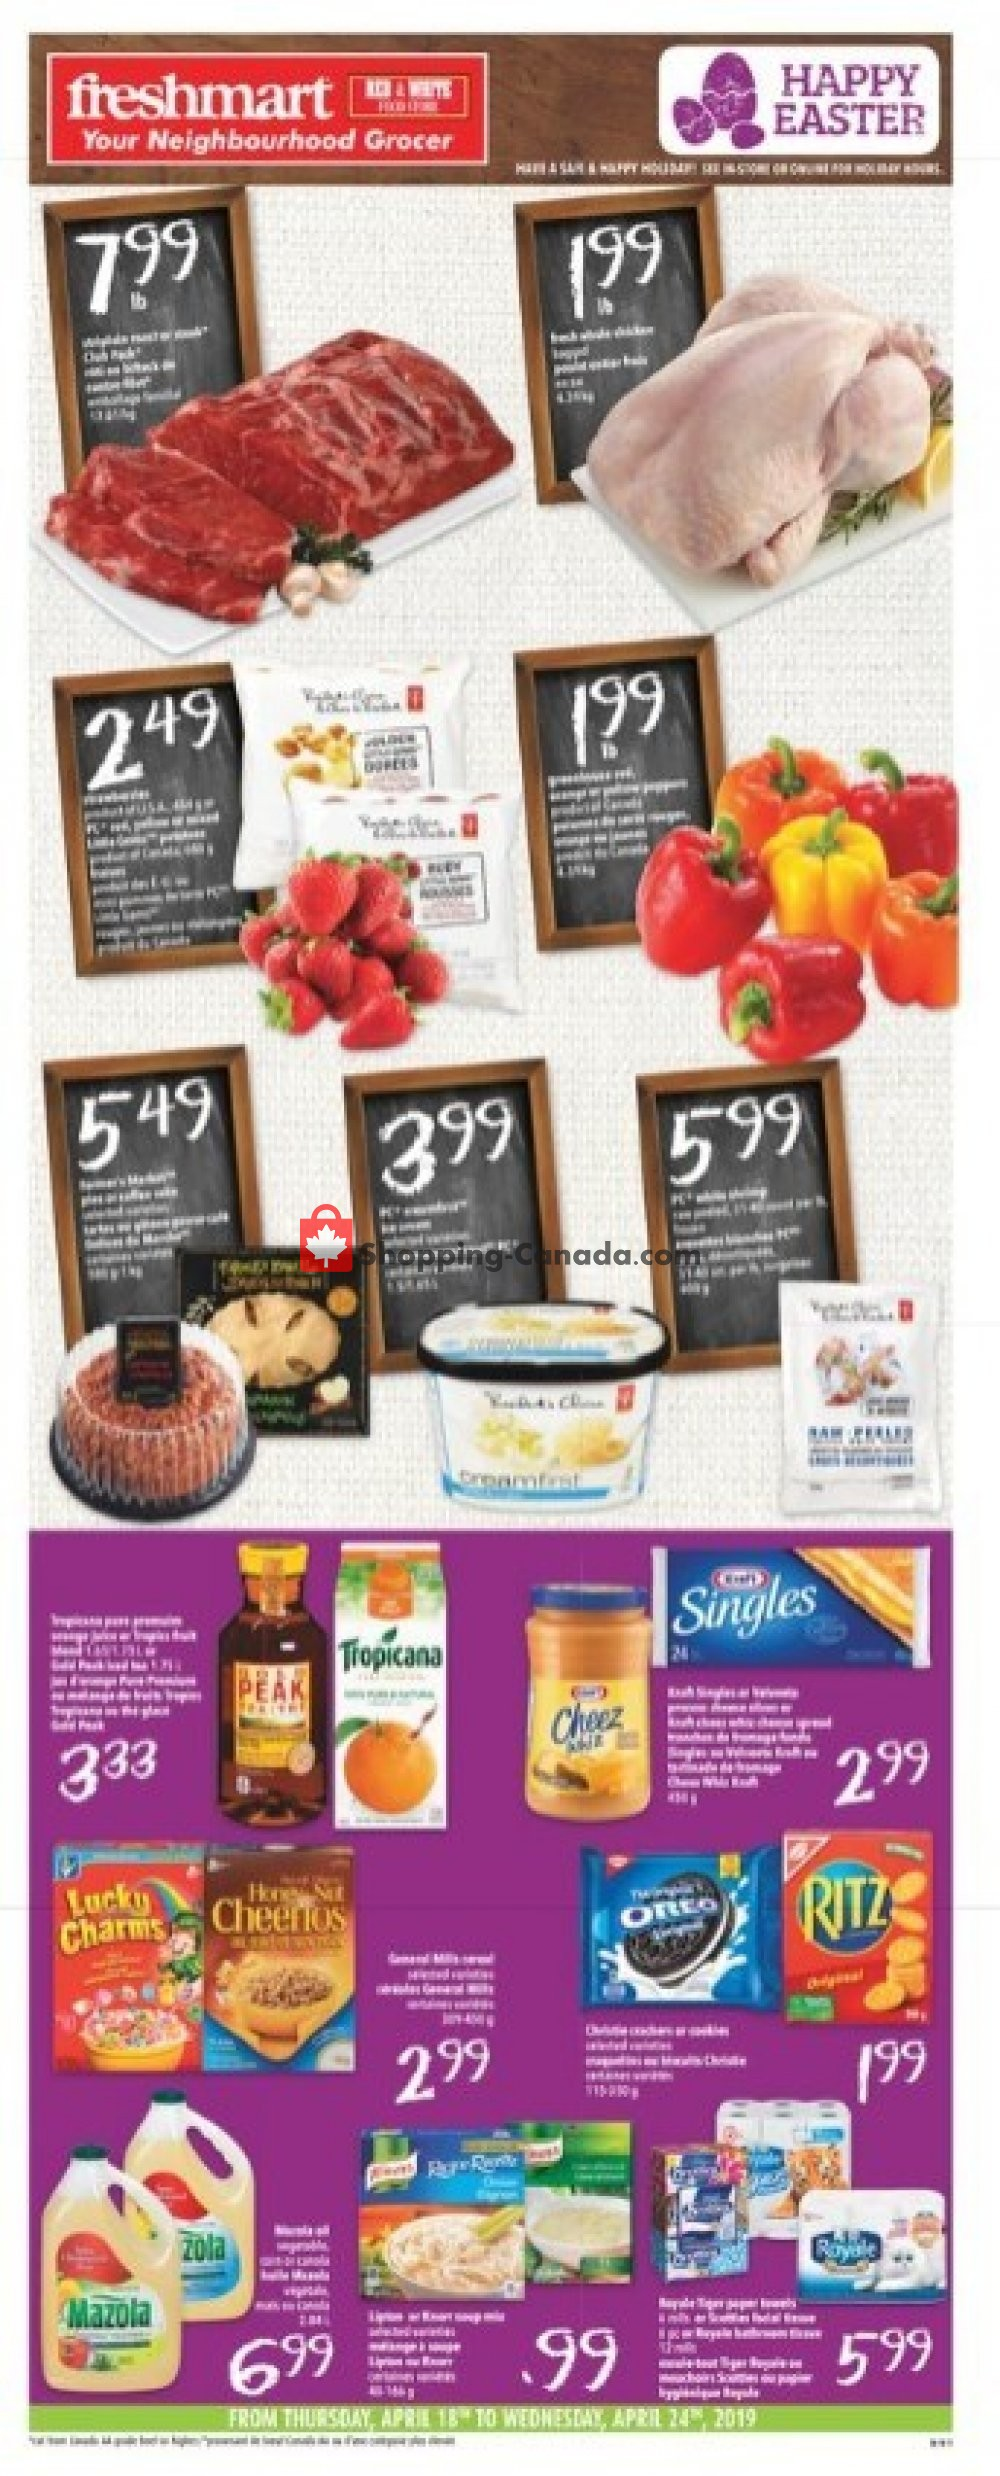 Flyer Freshmart Canada - from Thursday April 18, 2019 to Wednesday April 24, 2019